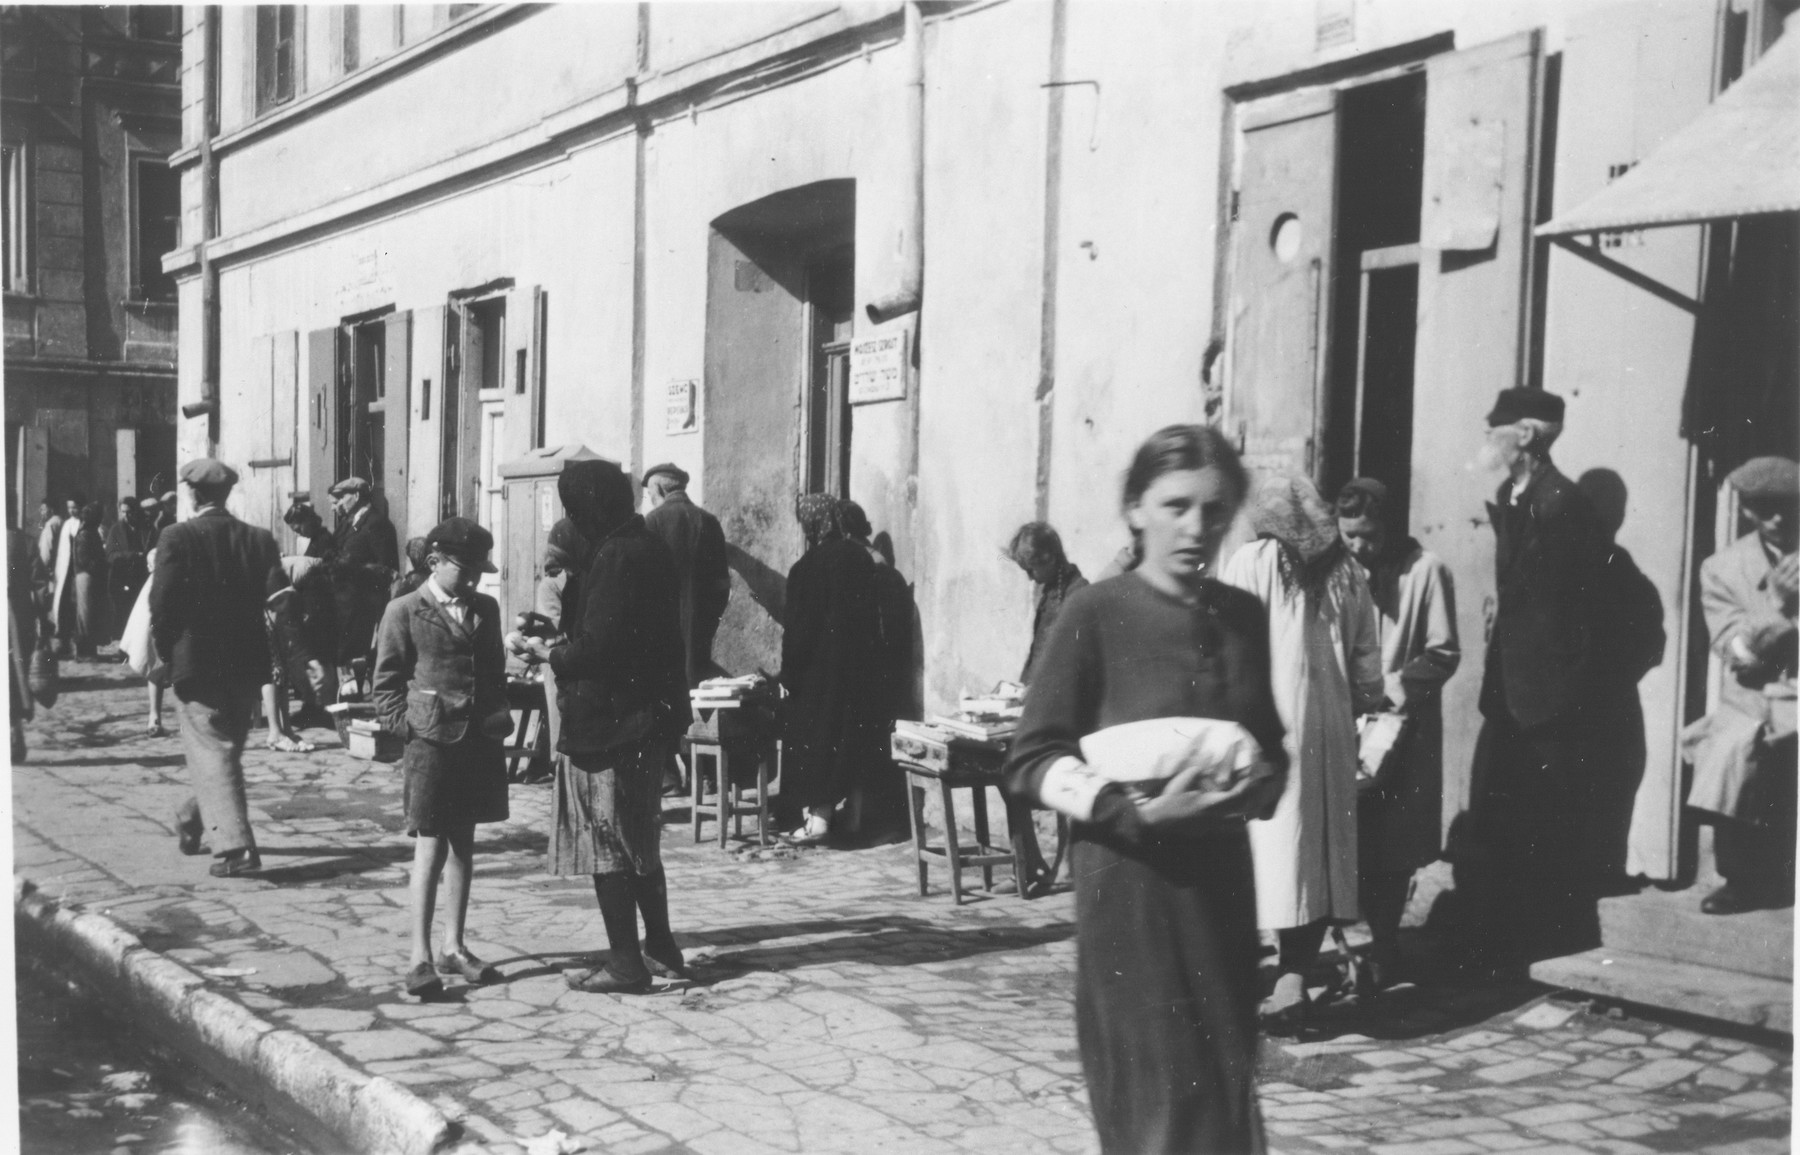 Polish Jews wearing armbands walk down a commercial street in an unidentified ghetto.